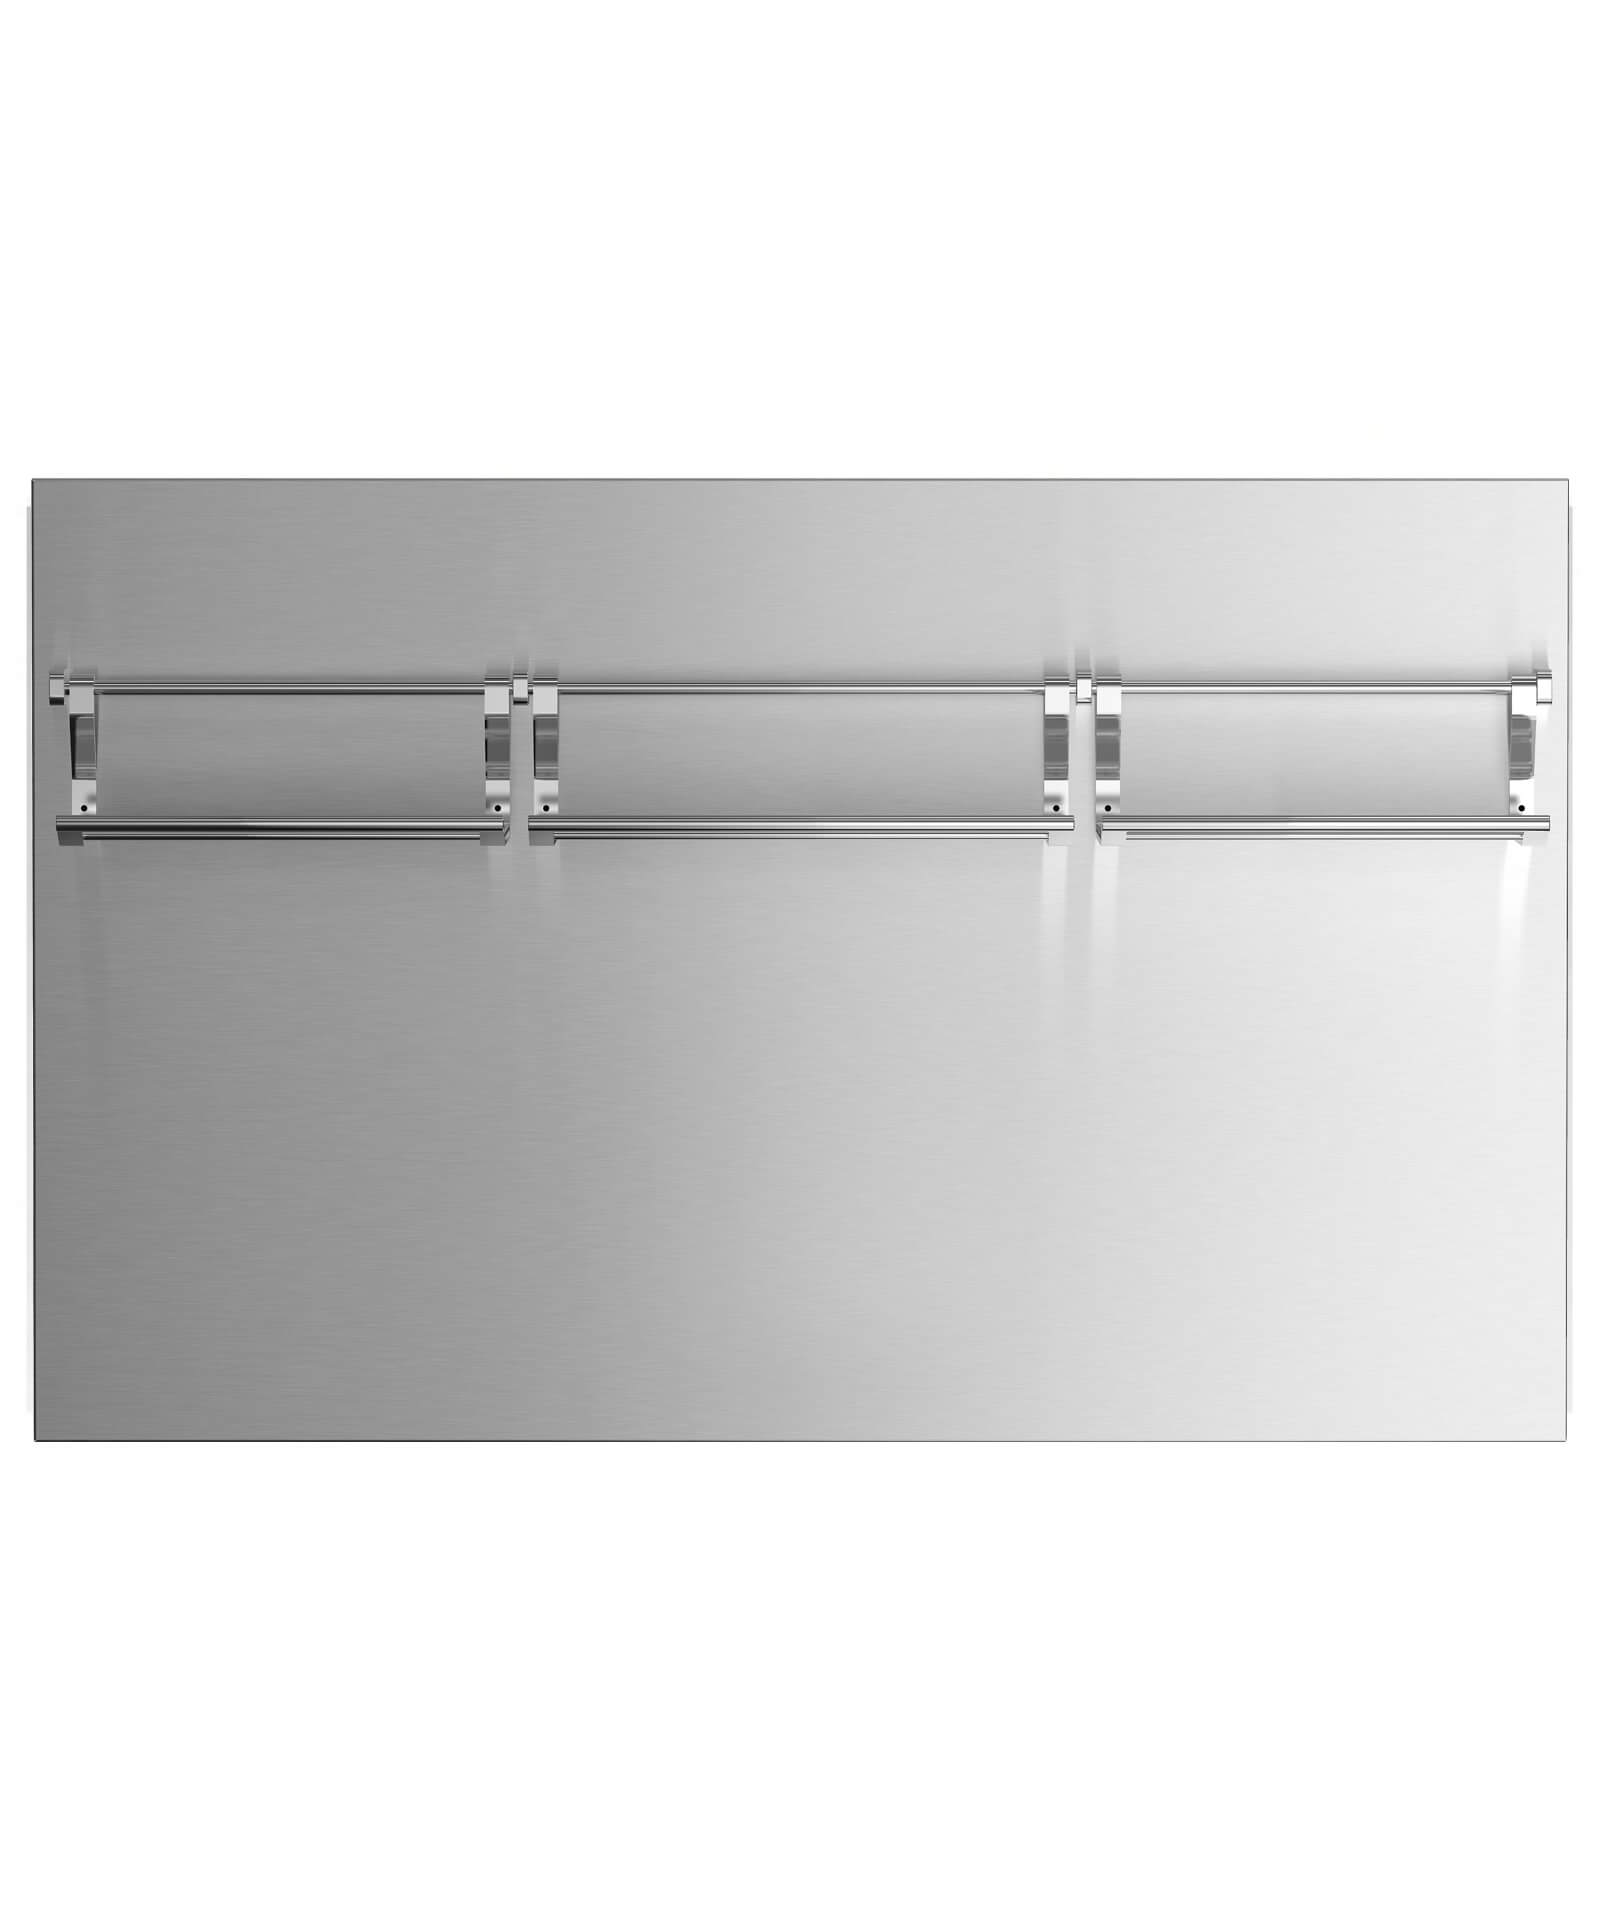 "Fisher and Paykel 48"" Pro Cooktop High Backguard"